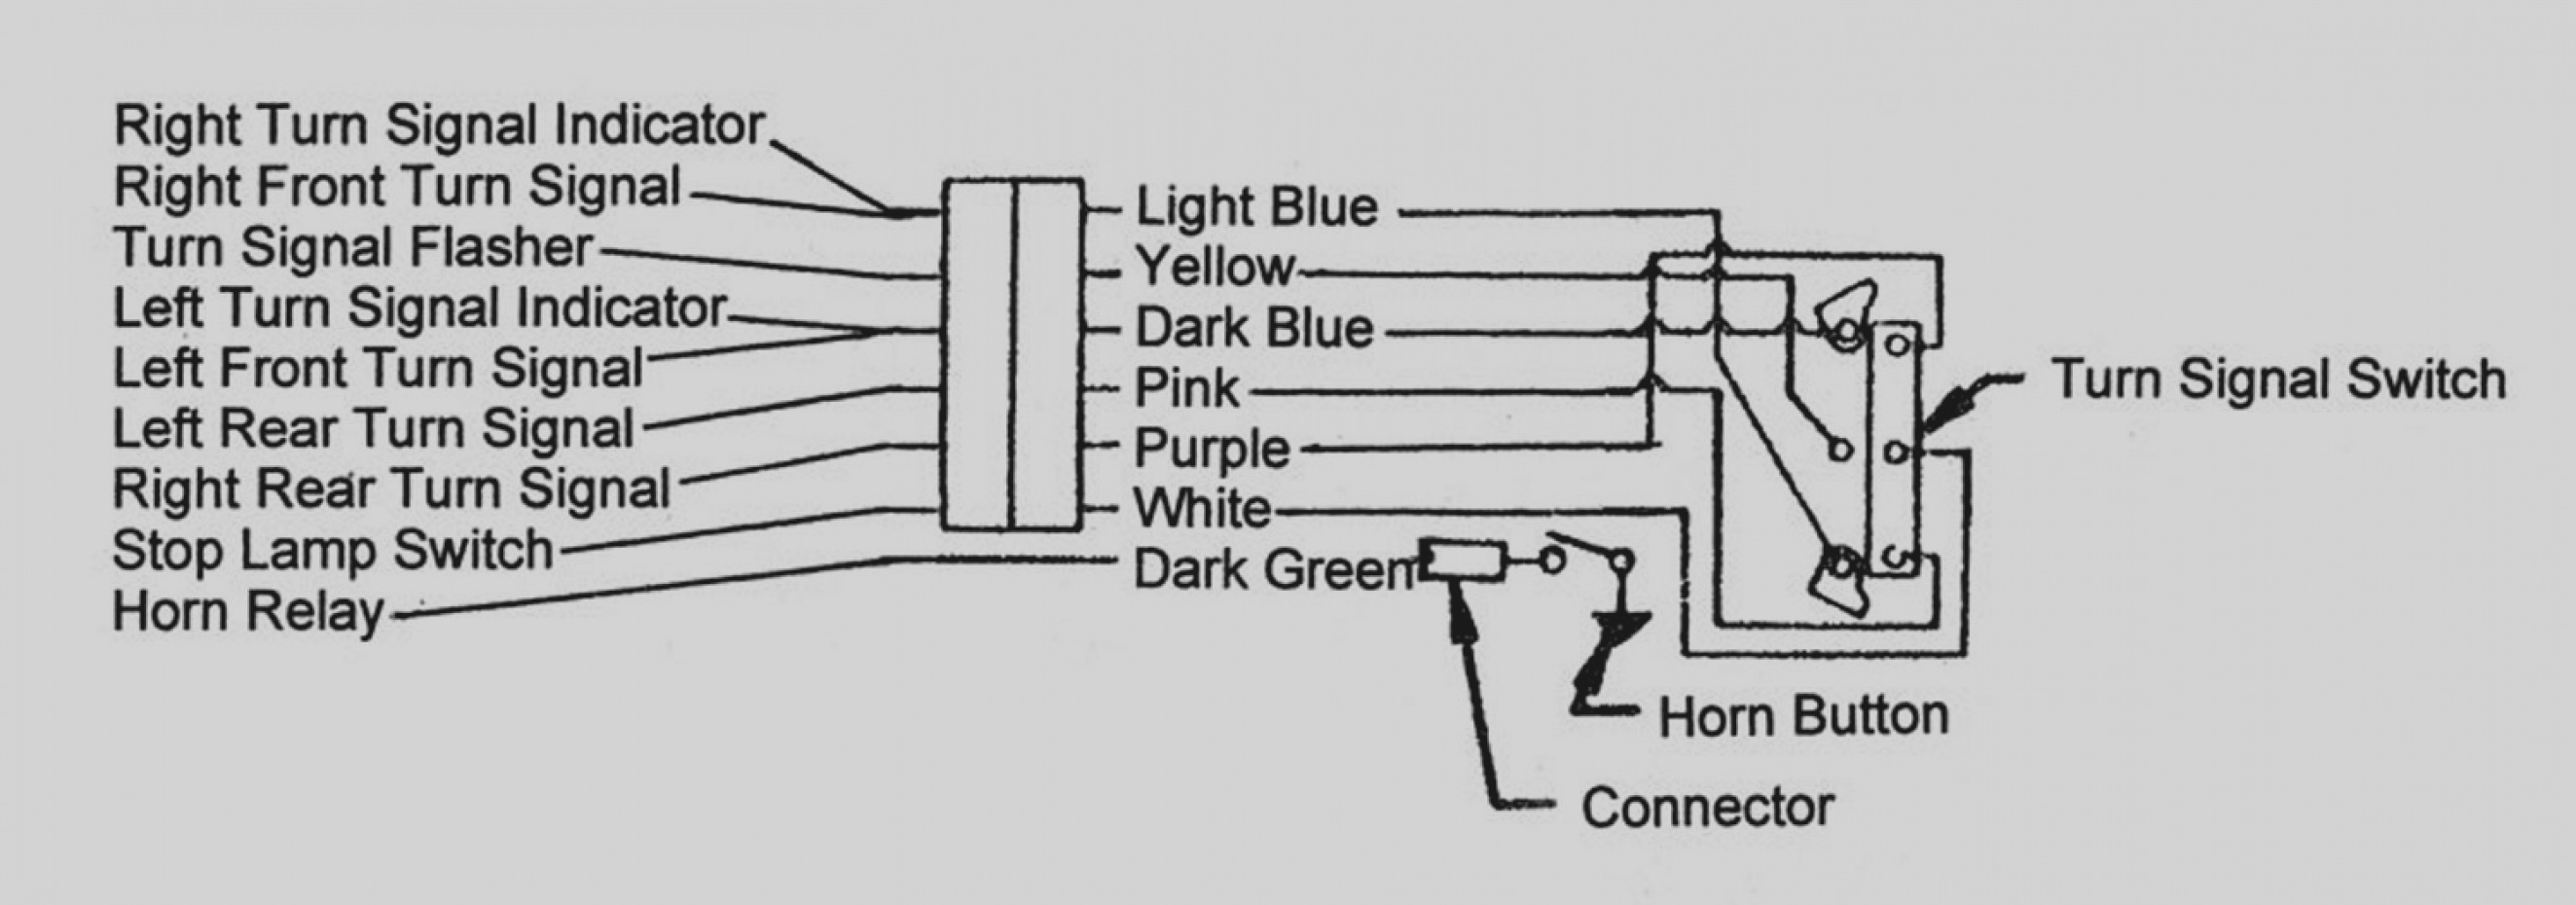 Jeep Tail Lights Wiring Diagram 1970 Trusted Cj5 1978 Blinker Switch Diagrams U2022 1998 Cherokee Schematic